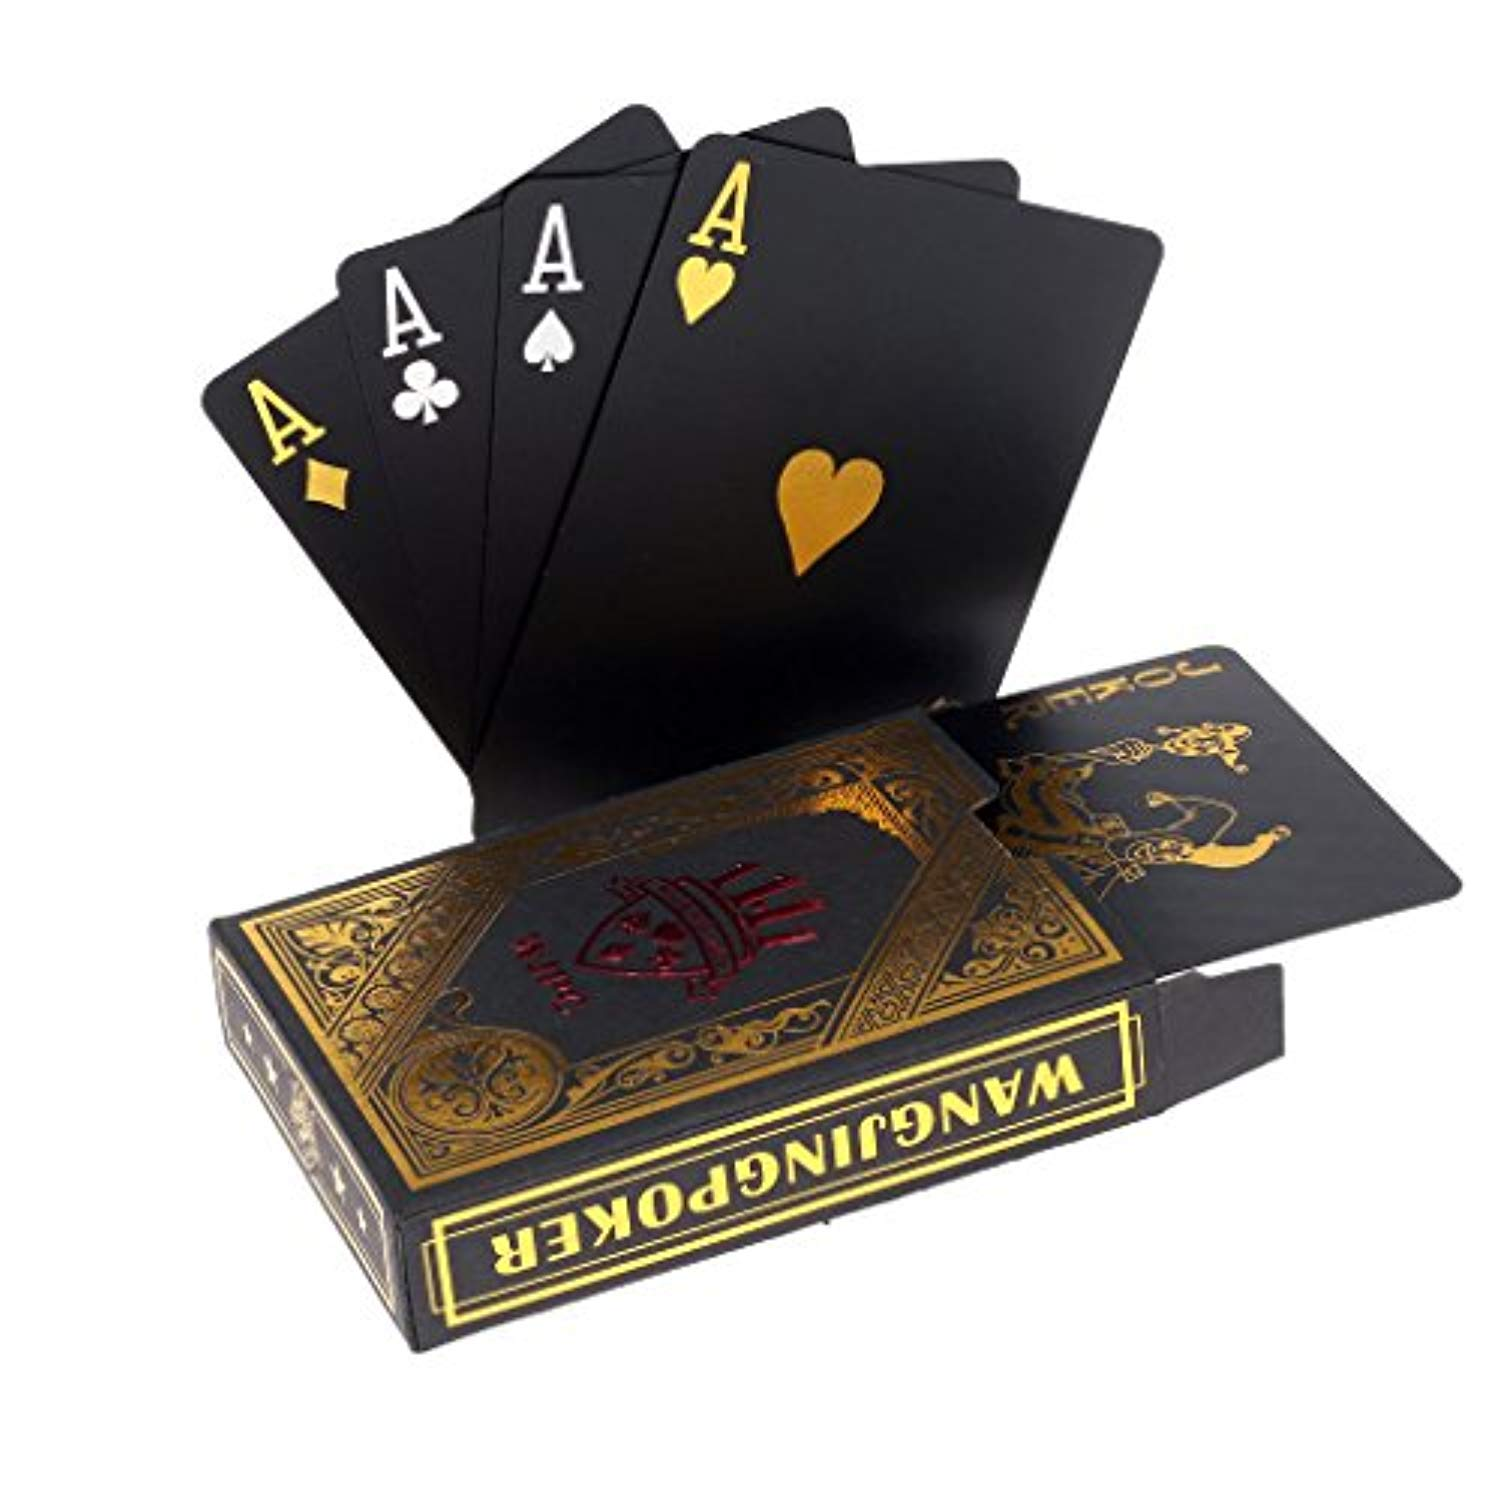 Professional Waterproof Plastic Poker Cards Black Playing Cards Plastic PVC Texas Hold'em Poker Cards